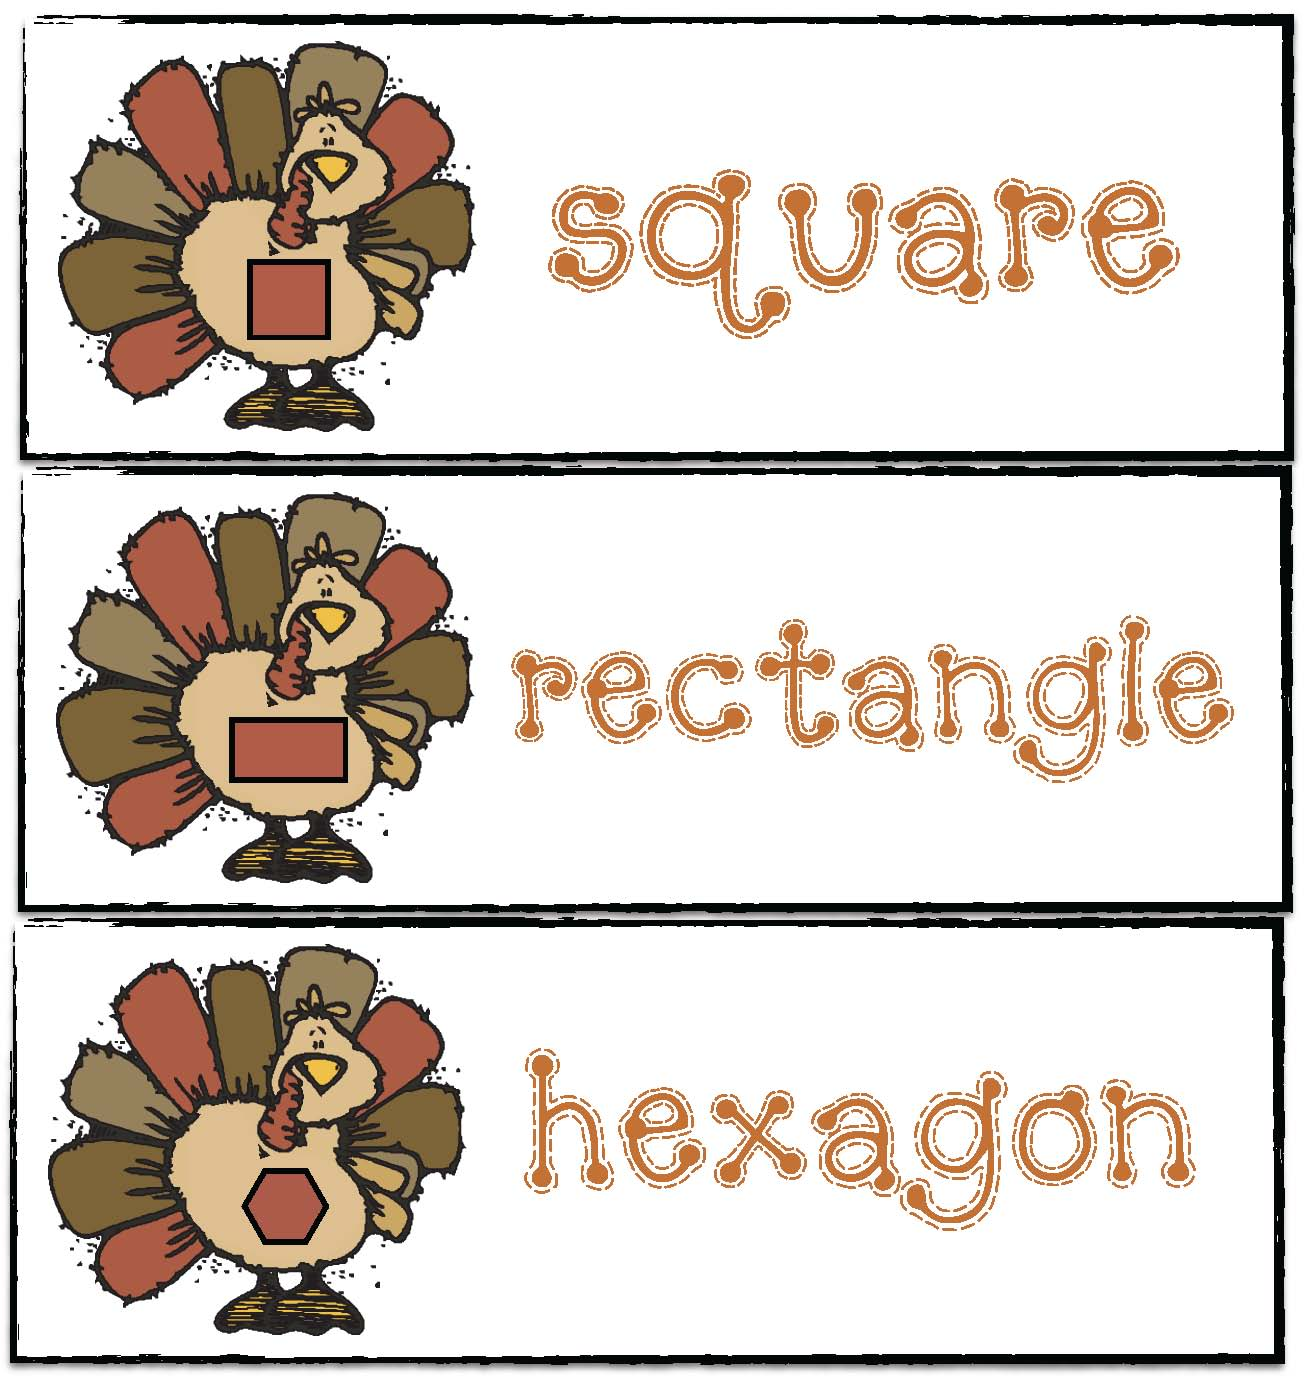 shape activities, shape crafts, 2D shape activities, common core turkeys, common core thanksgiving, thanksgiving crafts, thanksgiving games, turkey crafts, turkey games, turkey activities, keepsake crafts for kids, alphabet activities, skip counting activities, pocket chart cards with shapes,